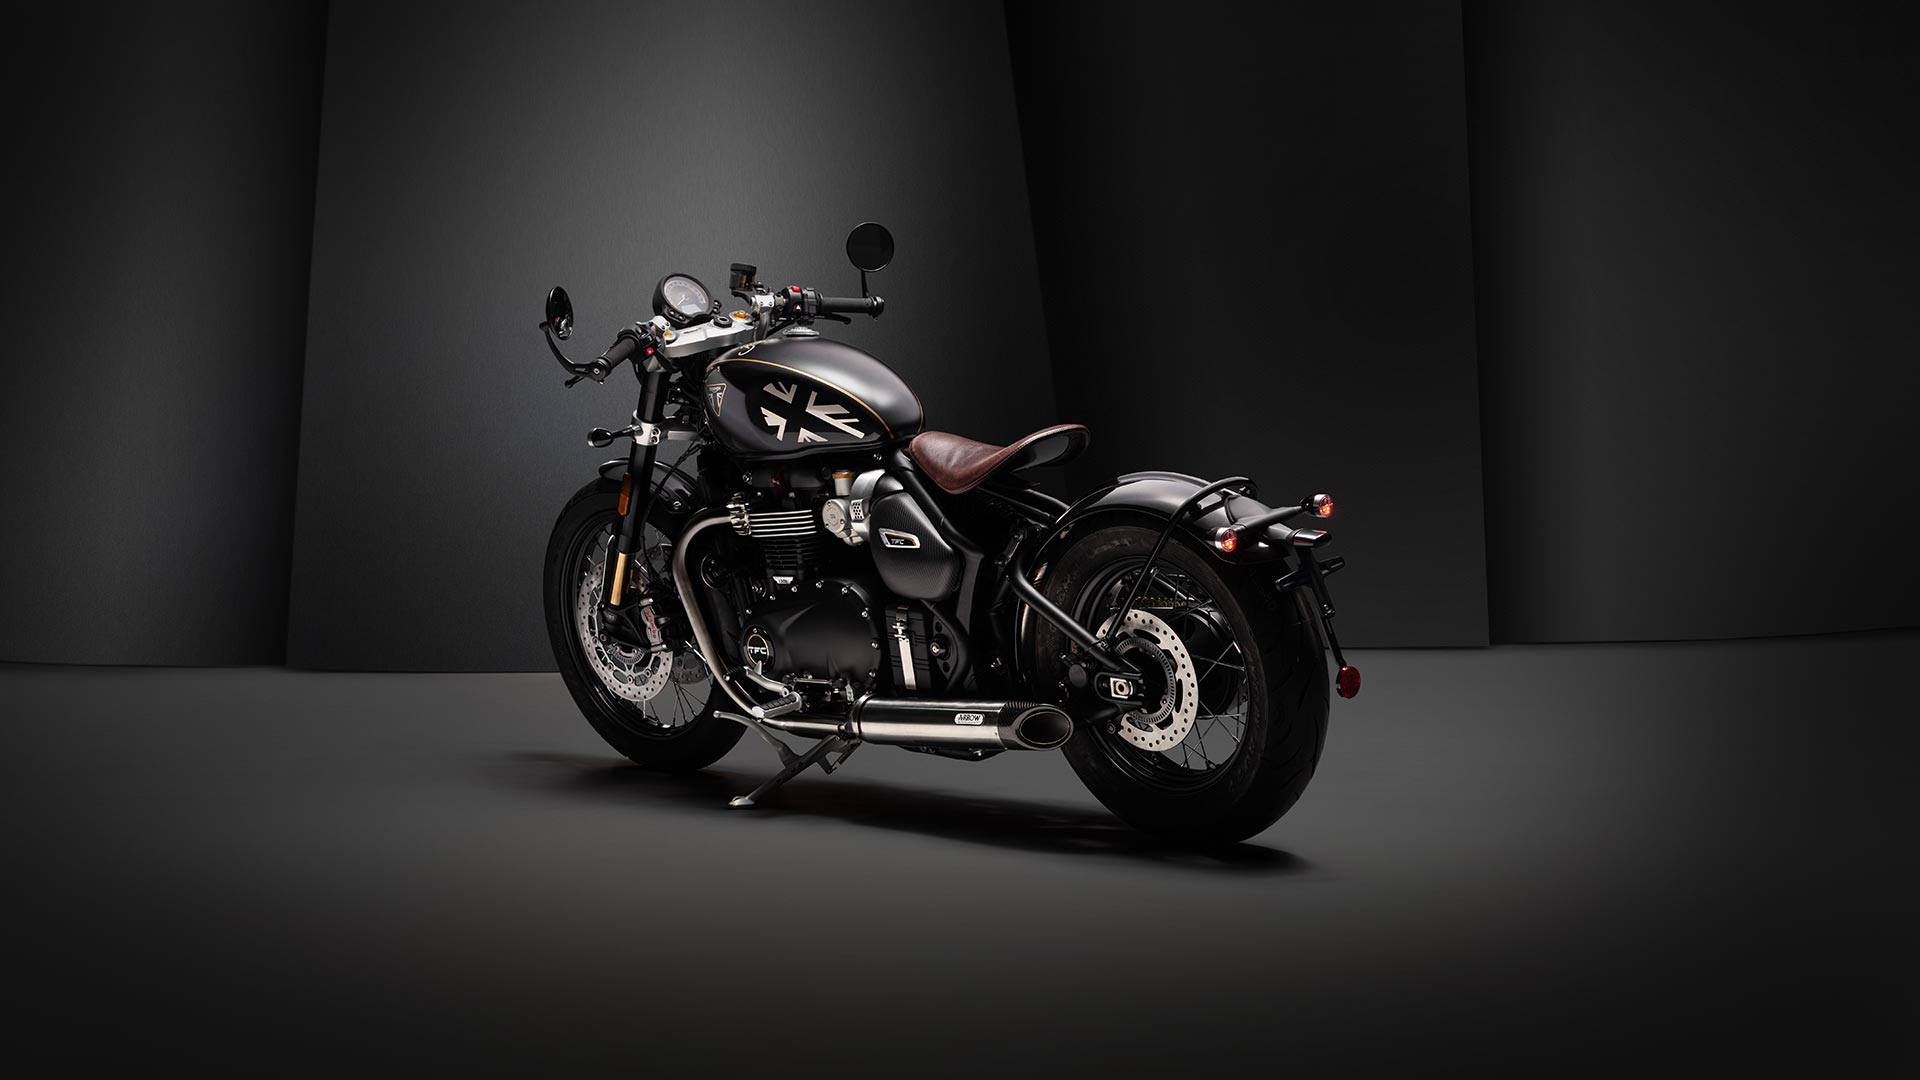 Wide shot of the Triumph Bobber TFC